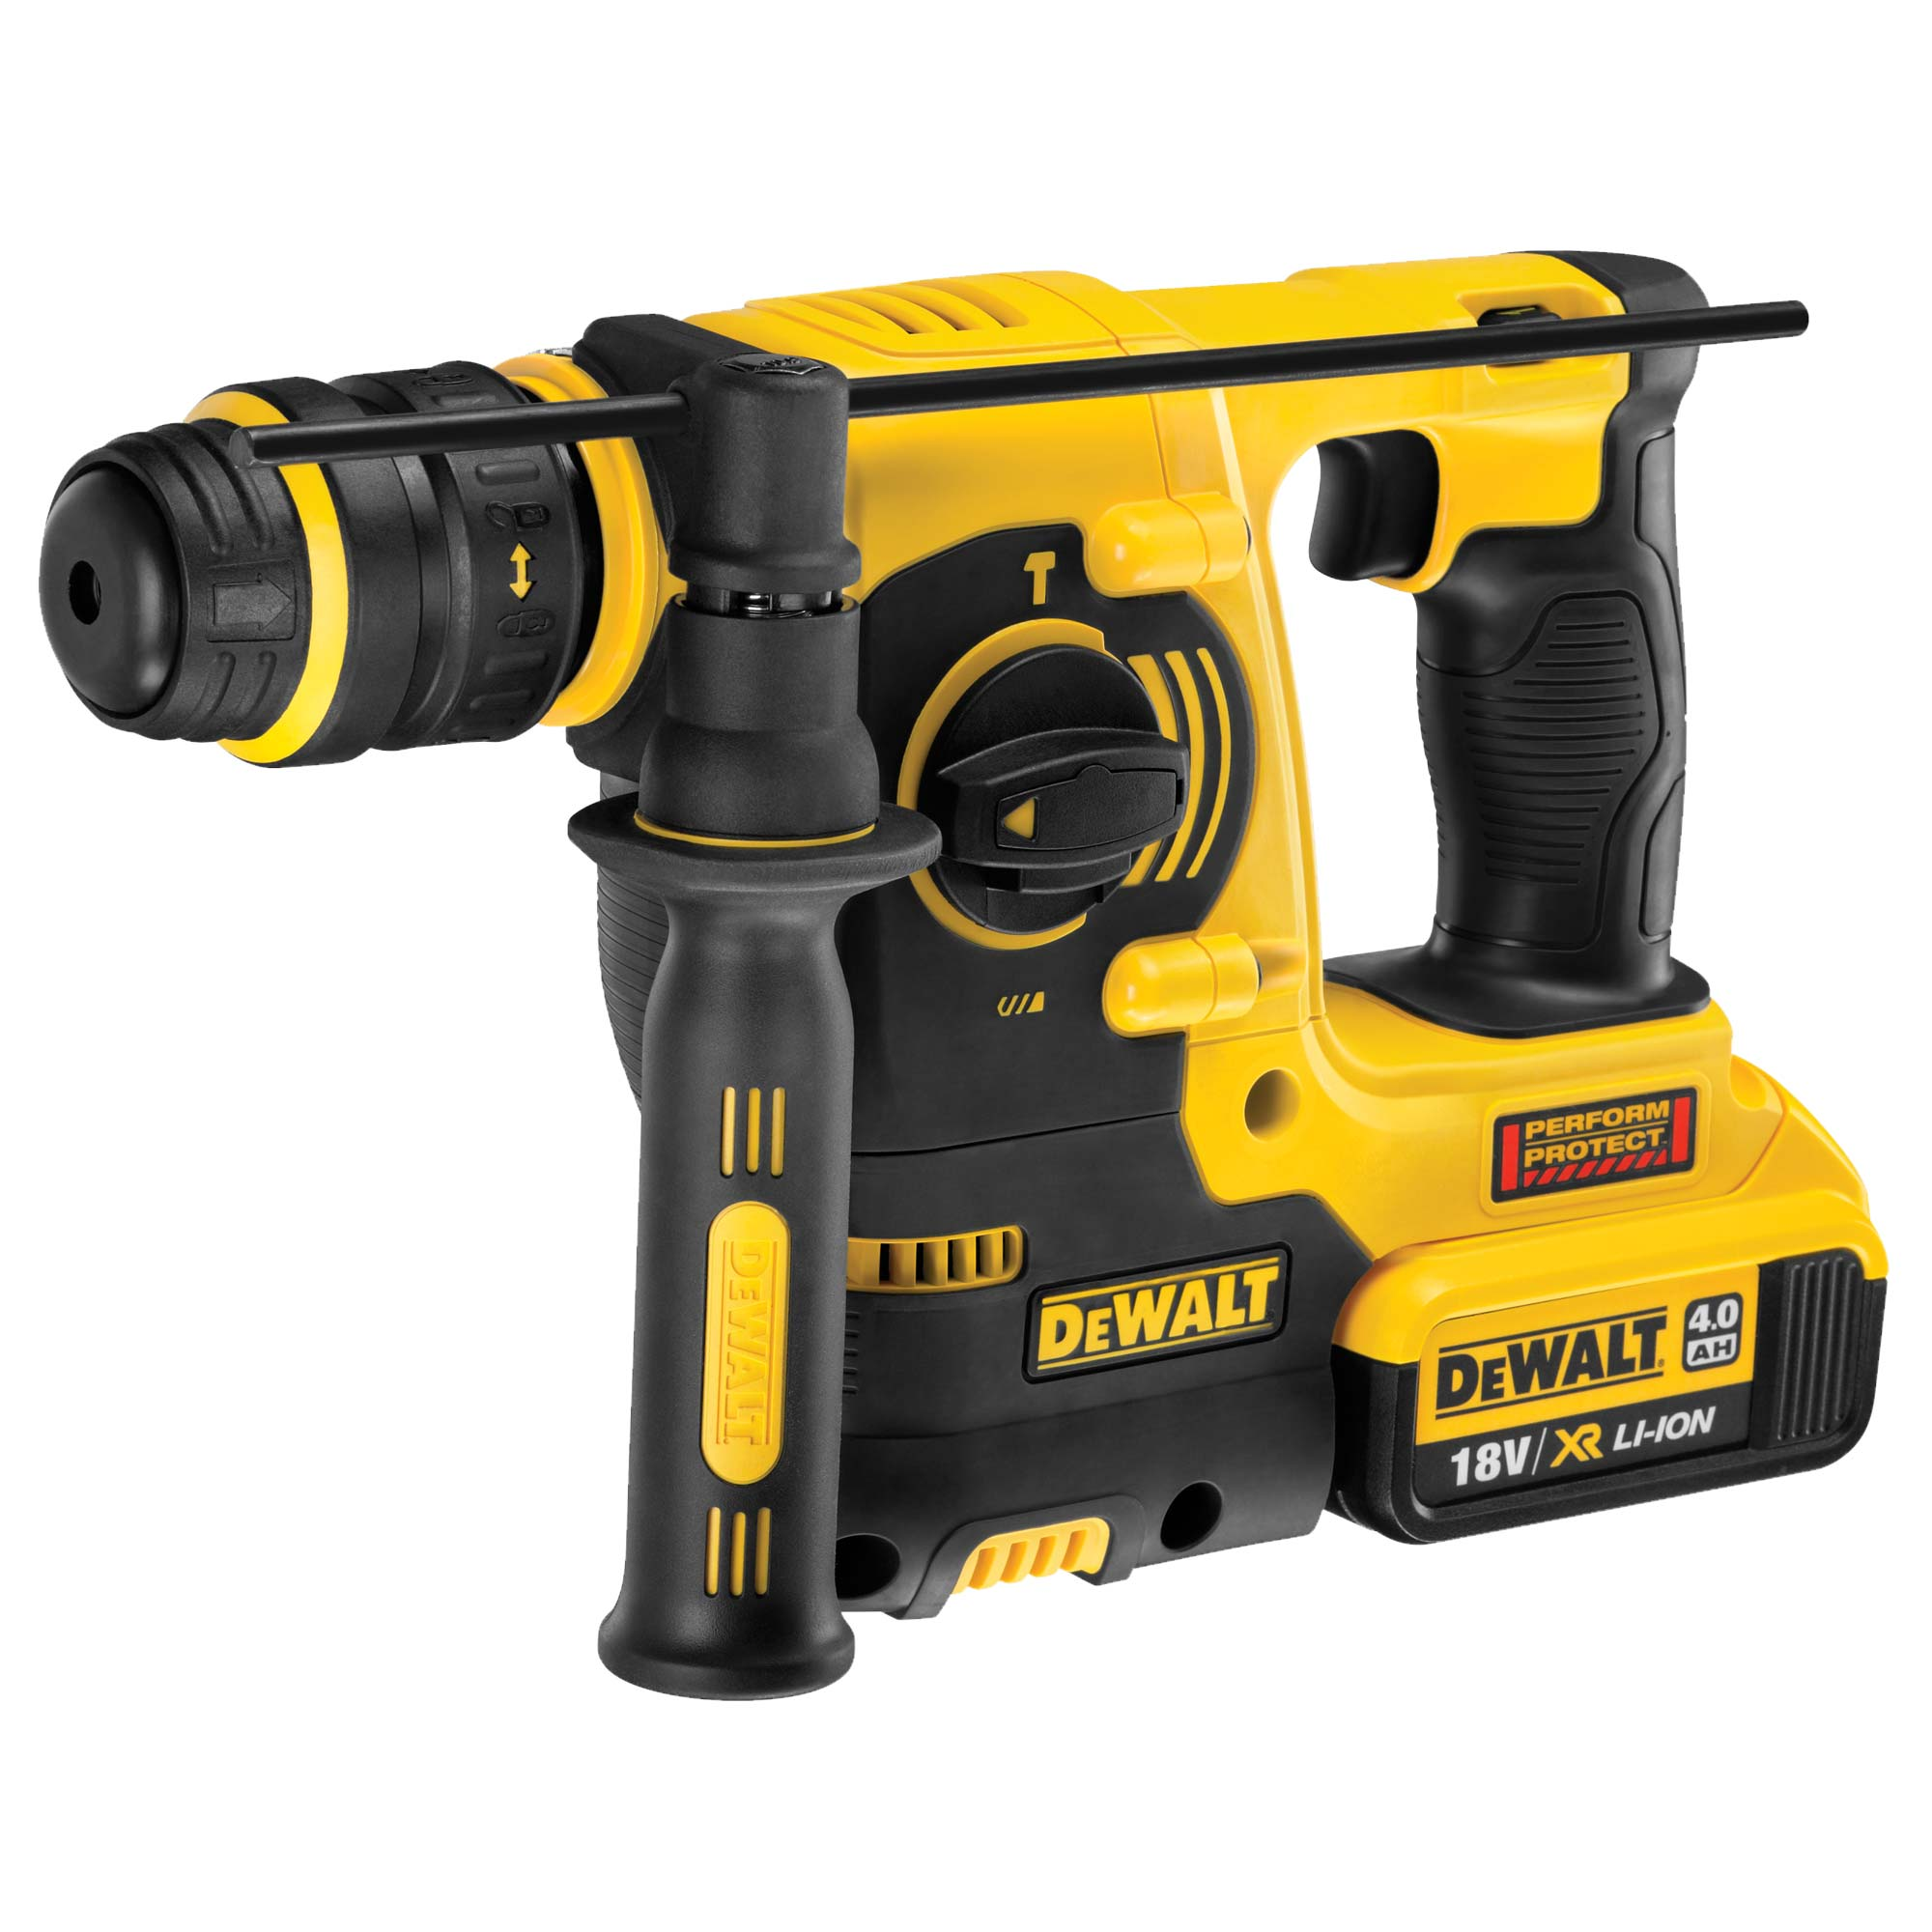 dewalt dch254m1 dewalt 18v xrp li ion sds rotary hammer. Black Bedroom Furniture Sets. Home Design Ideas